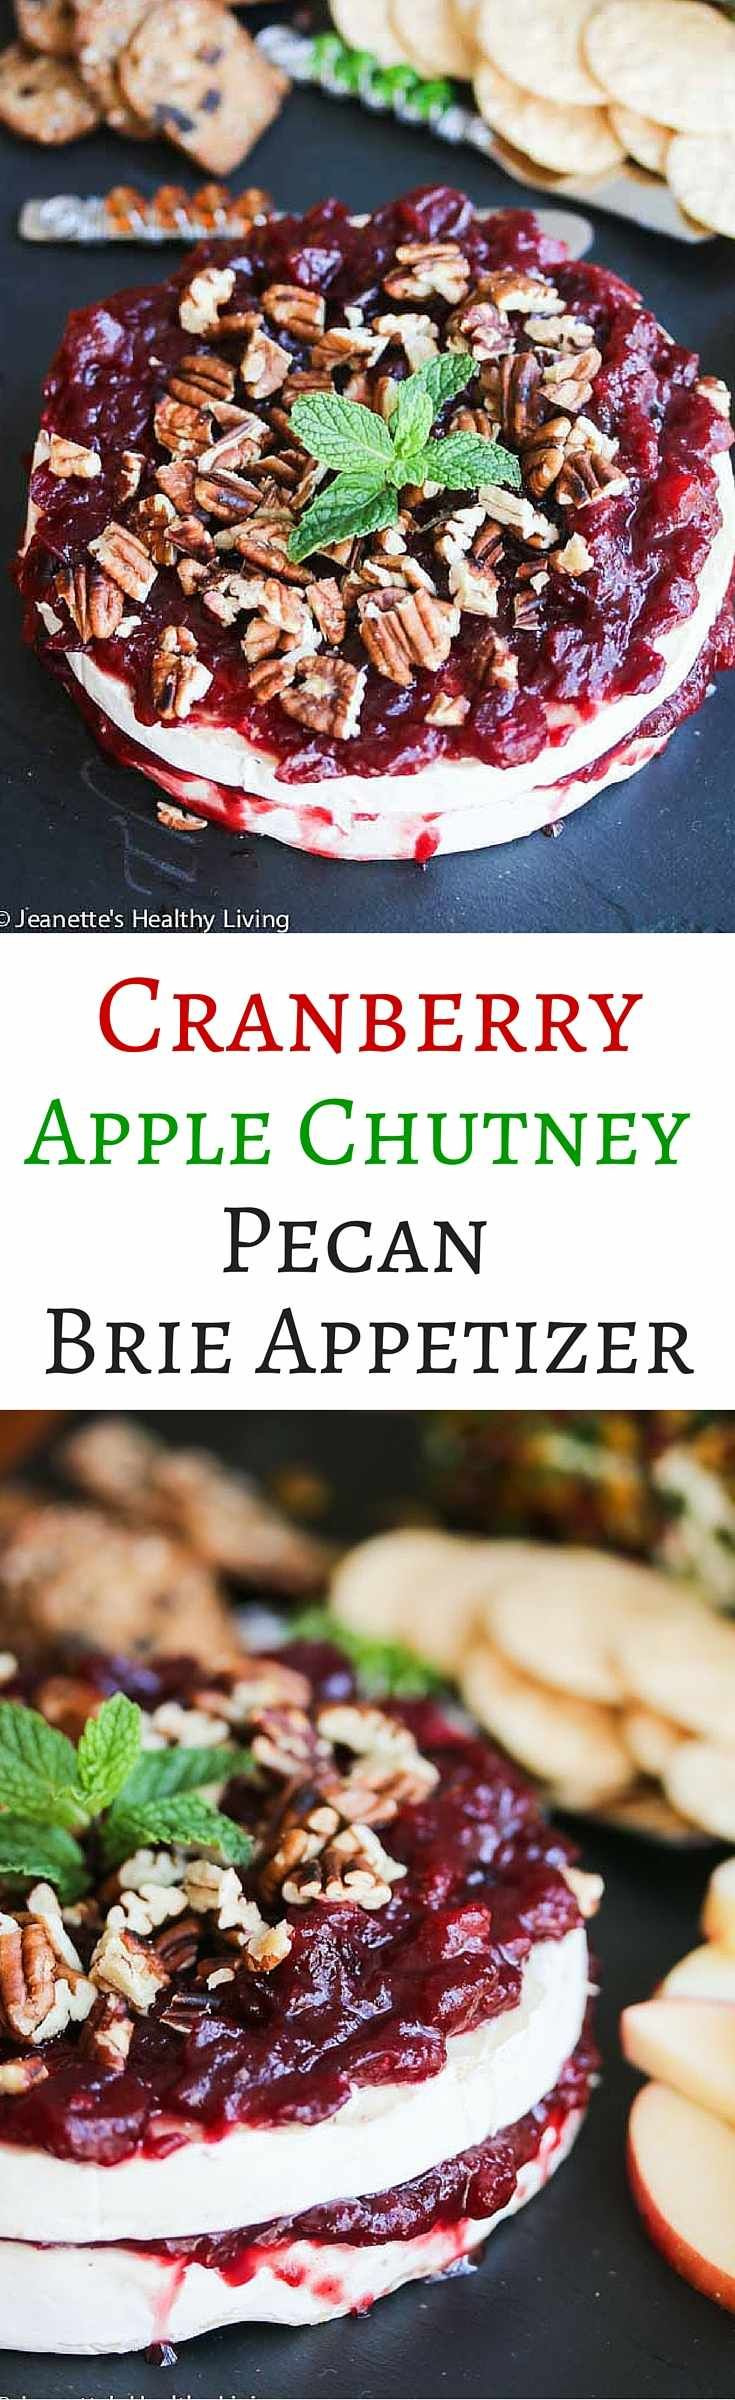 Cranberry Apple Chutney Pecan Brie Appetizer - this elegant appetizer is perfect for the Christmas holiday! ~ http://jeanetteshealthyliving.com